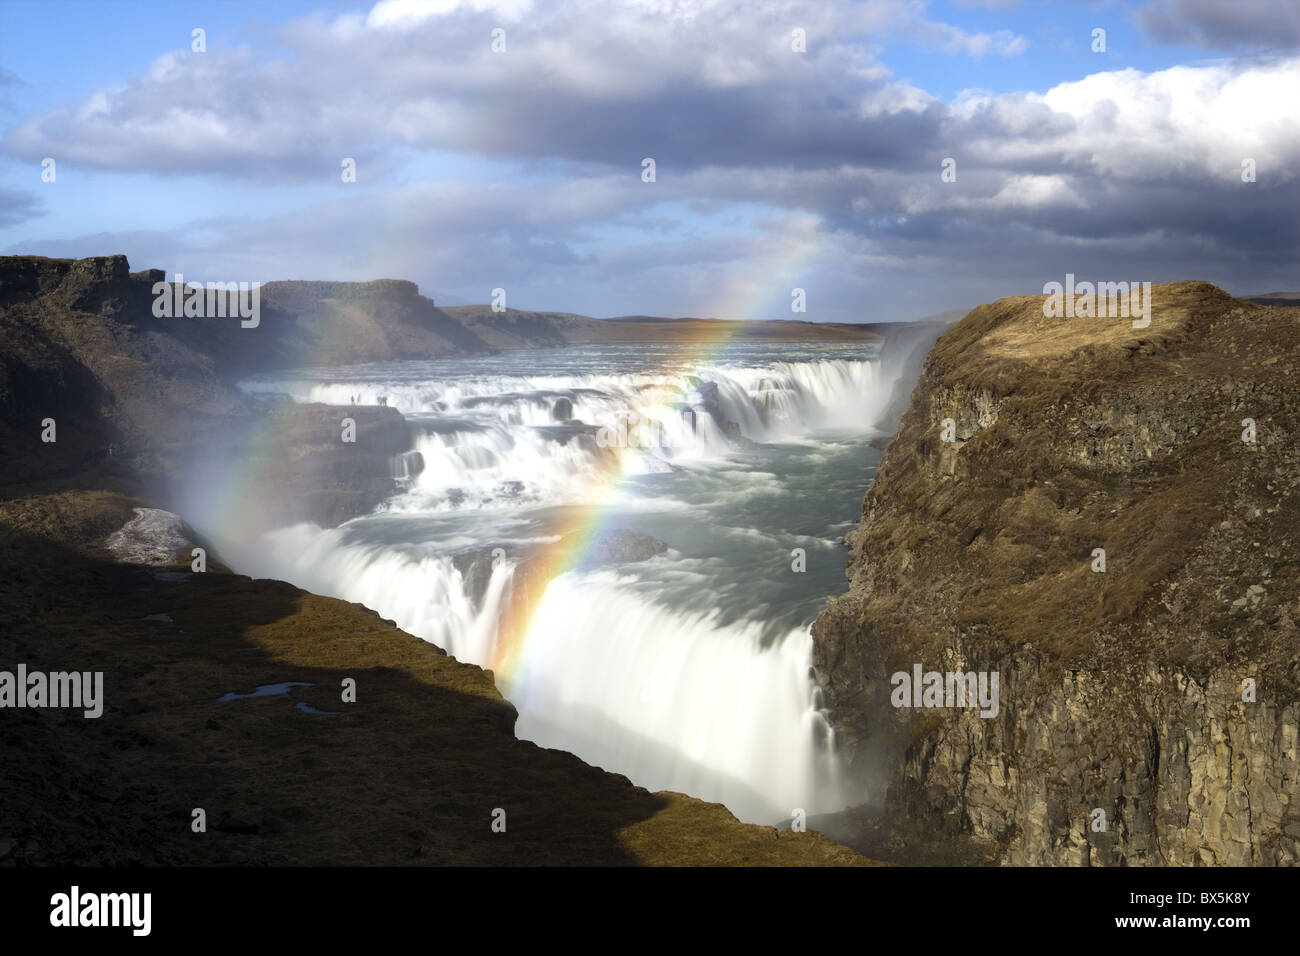 Gullfoss, Europe's biggest waterfall, with rainbow created by spray from the falls, near Reykjavik, Iceland, - Stock Image